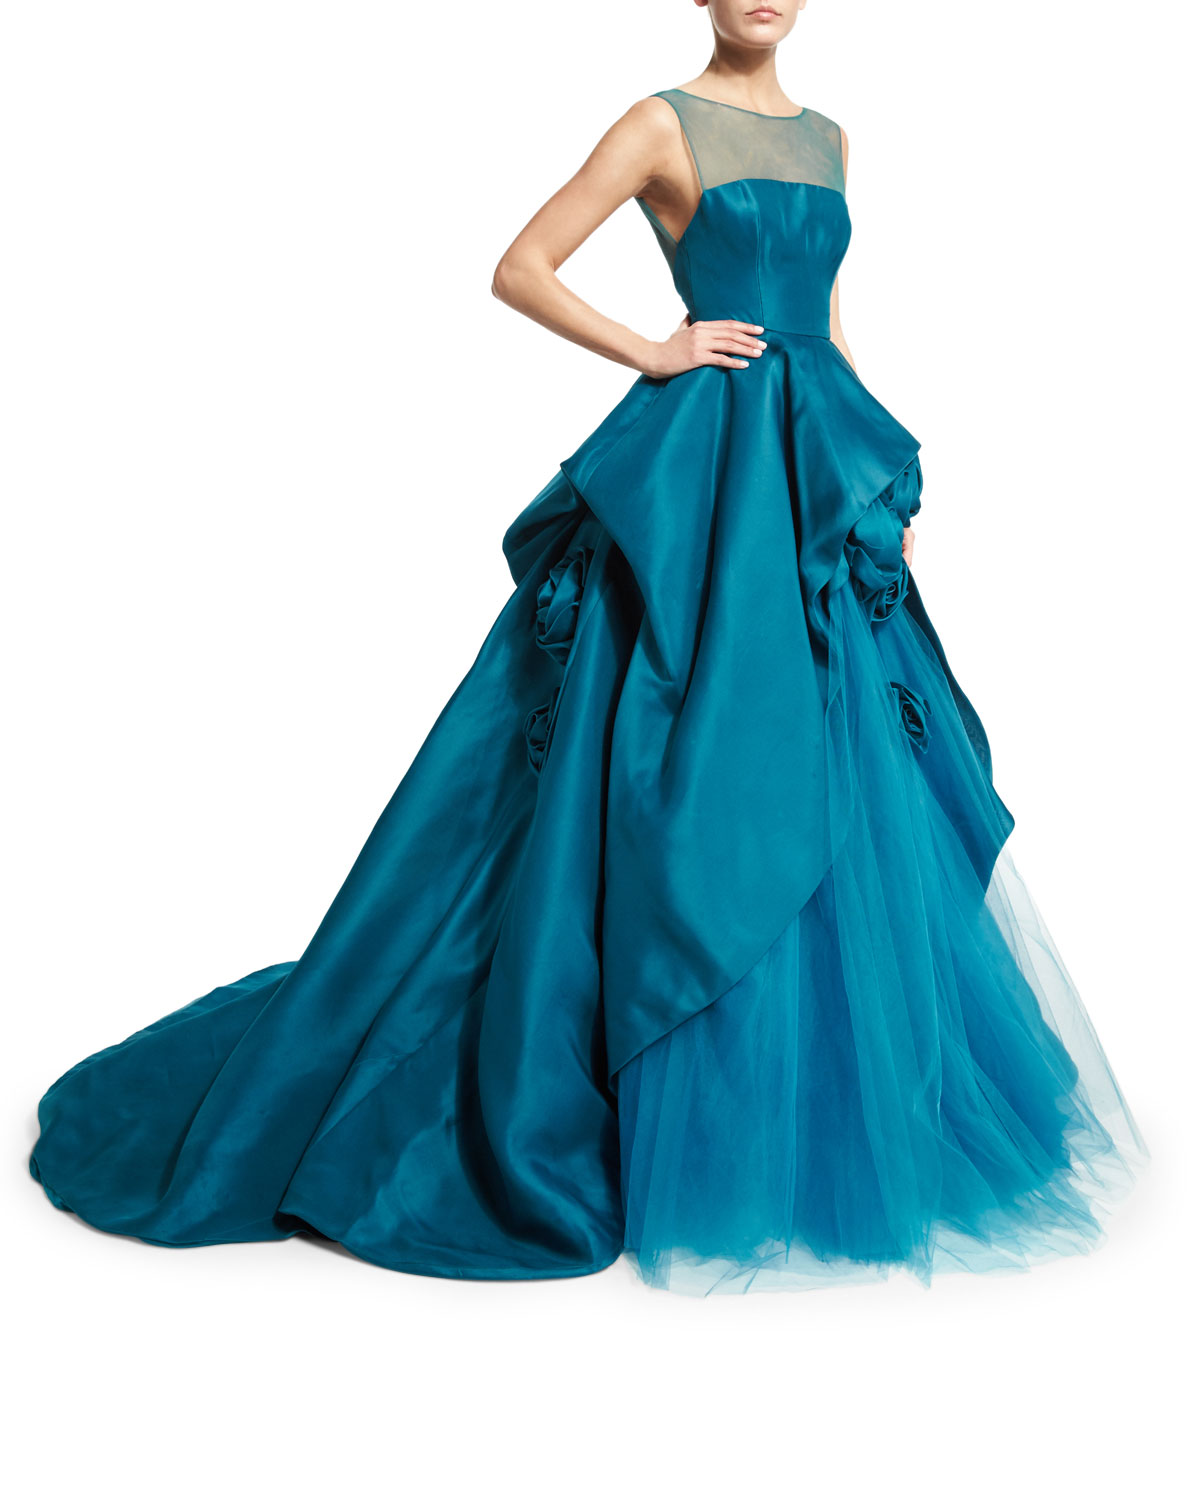 Monique Lhuillier Illusion Strapless Ball Gown W/Rosettes, Teal ...